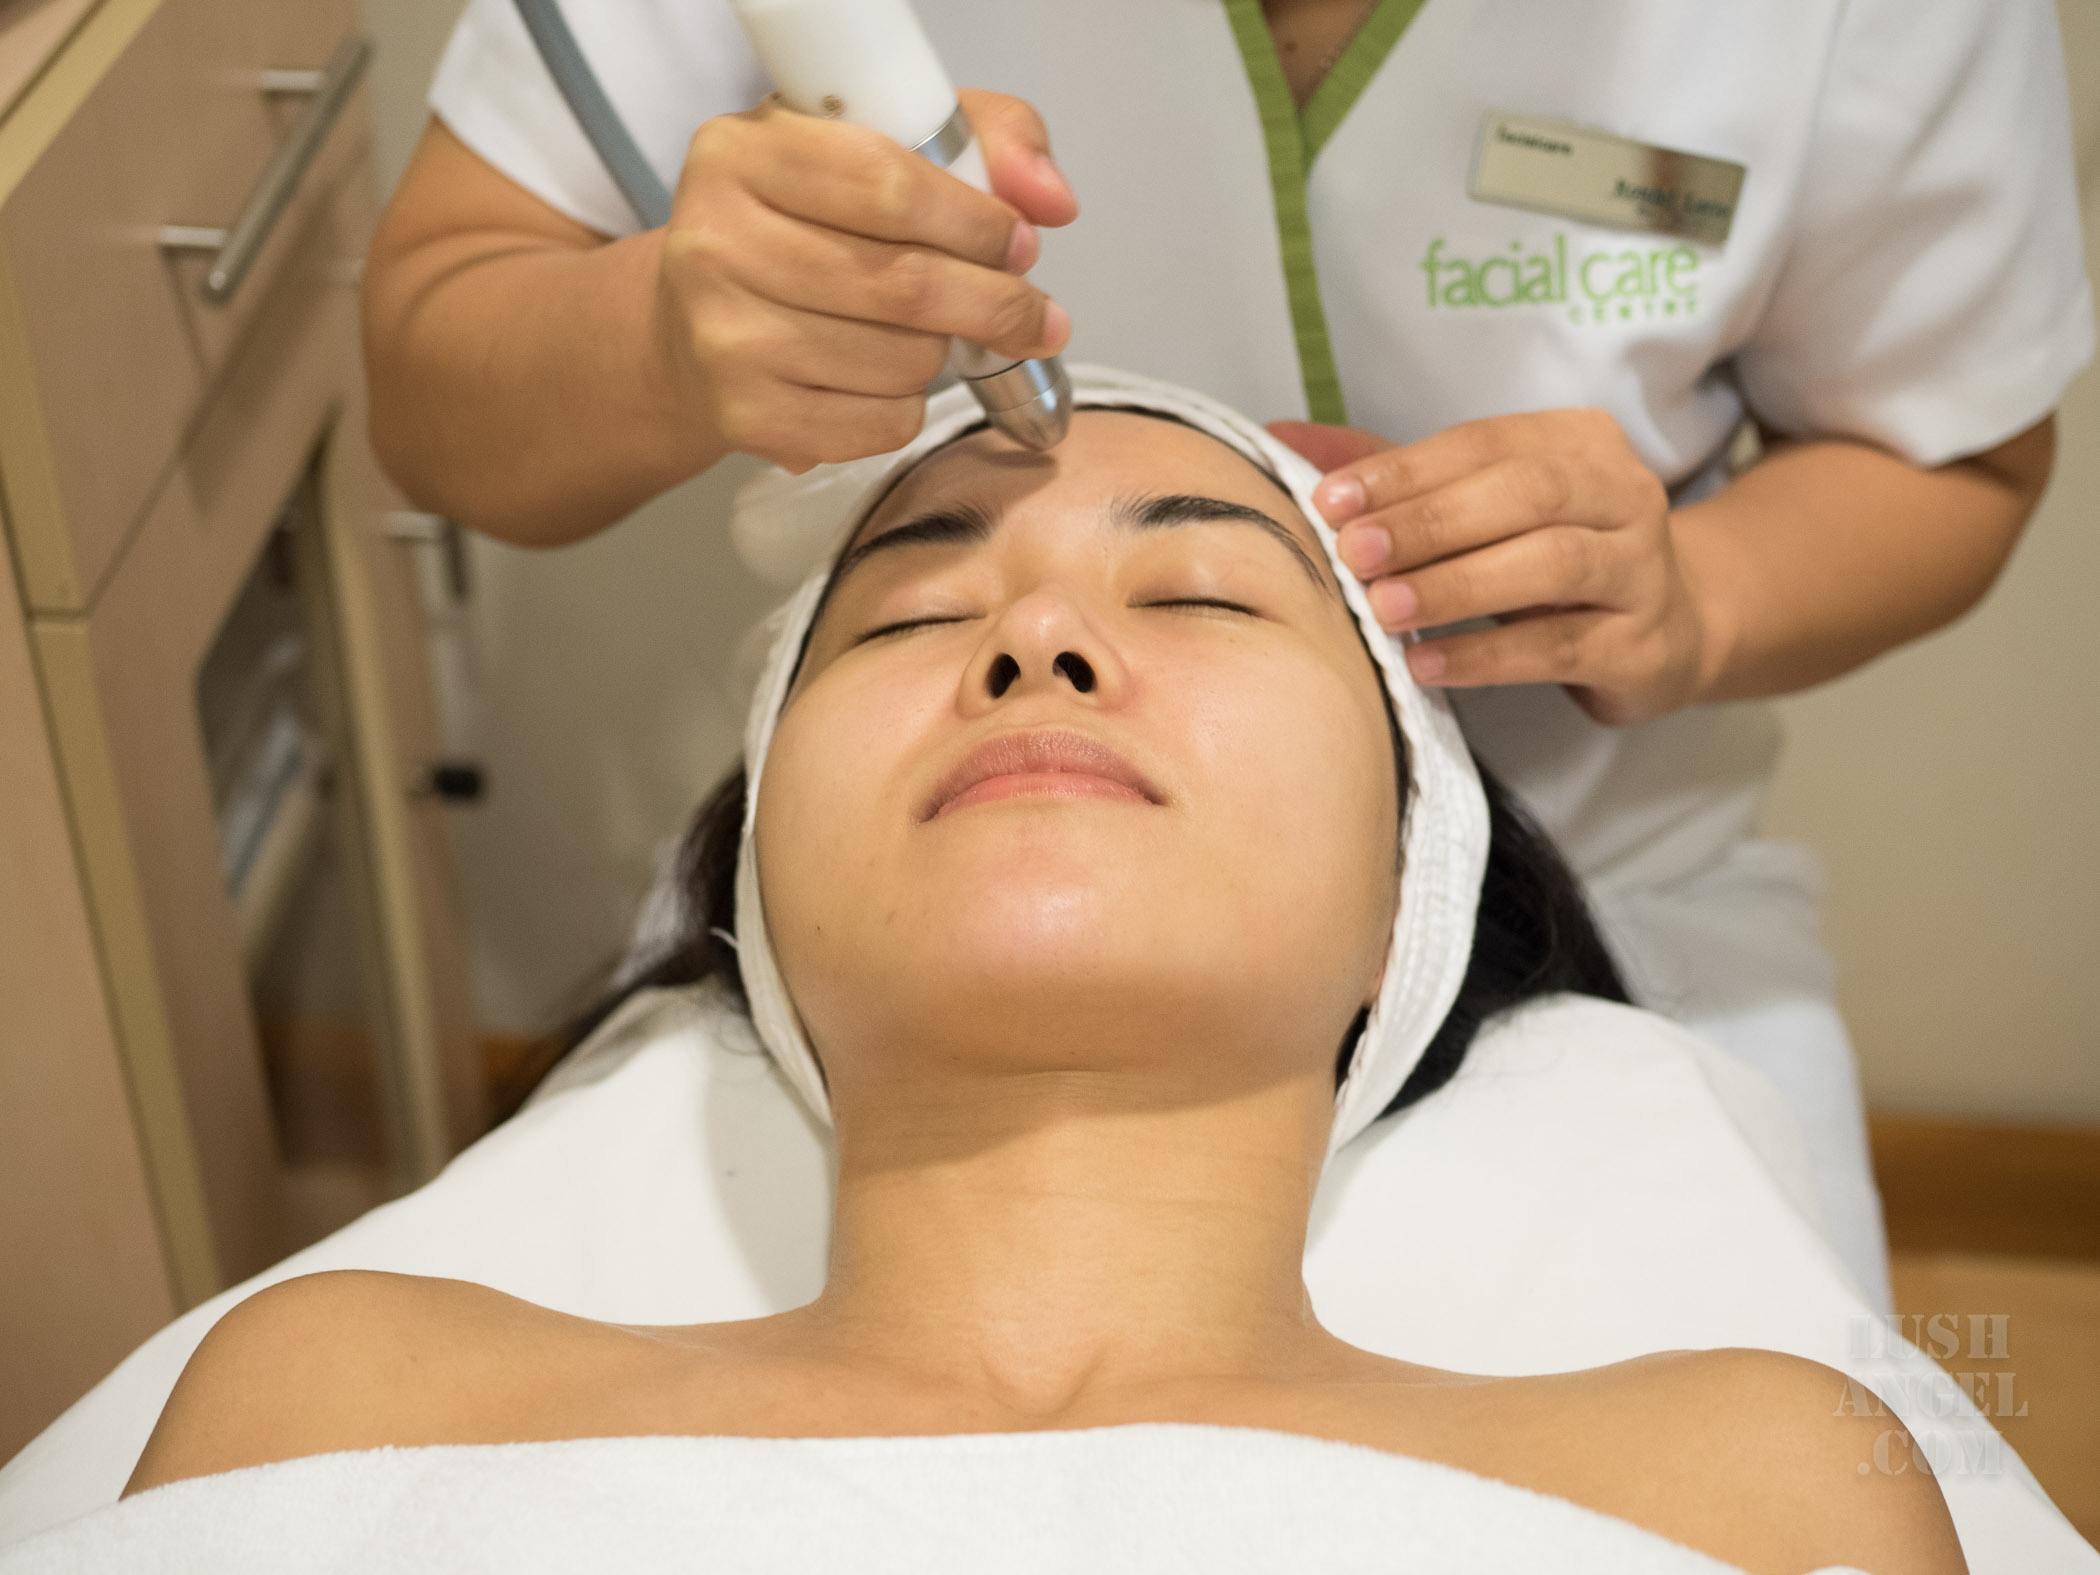 facial-care-centre-oxygen-cell-renewal-therapy